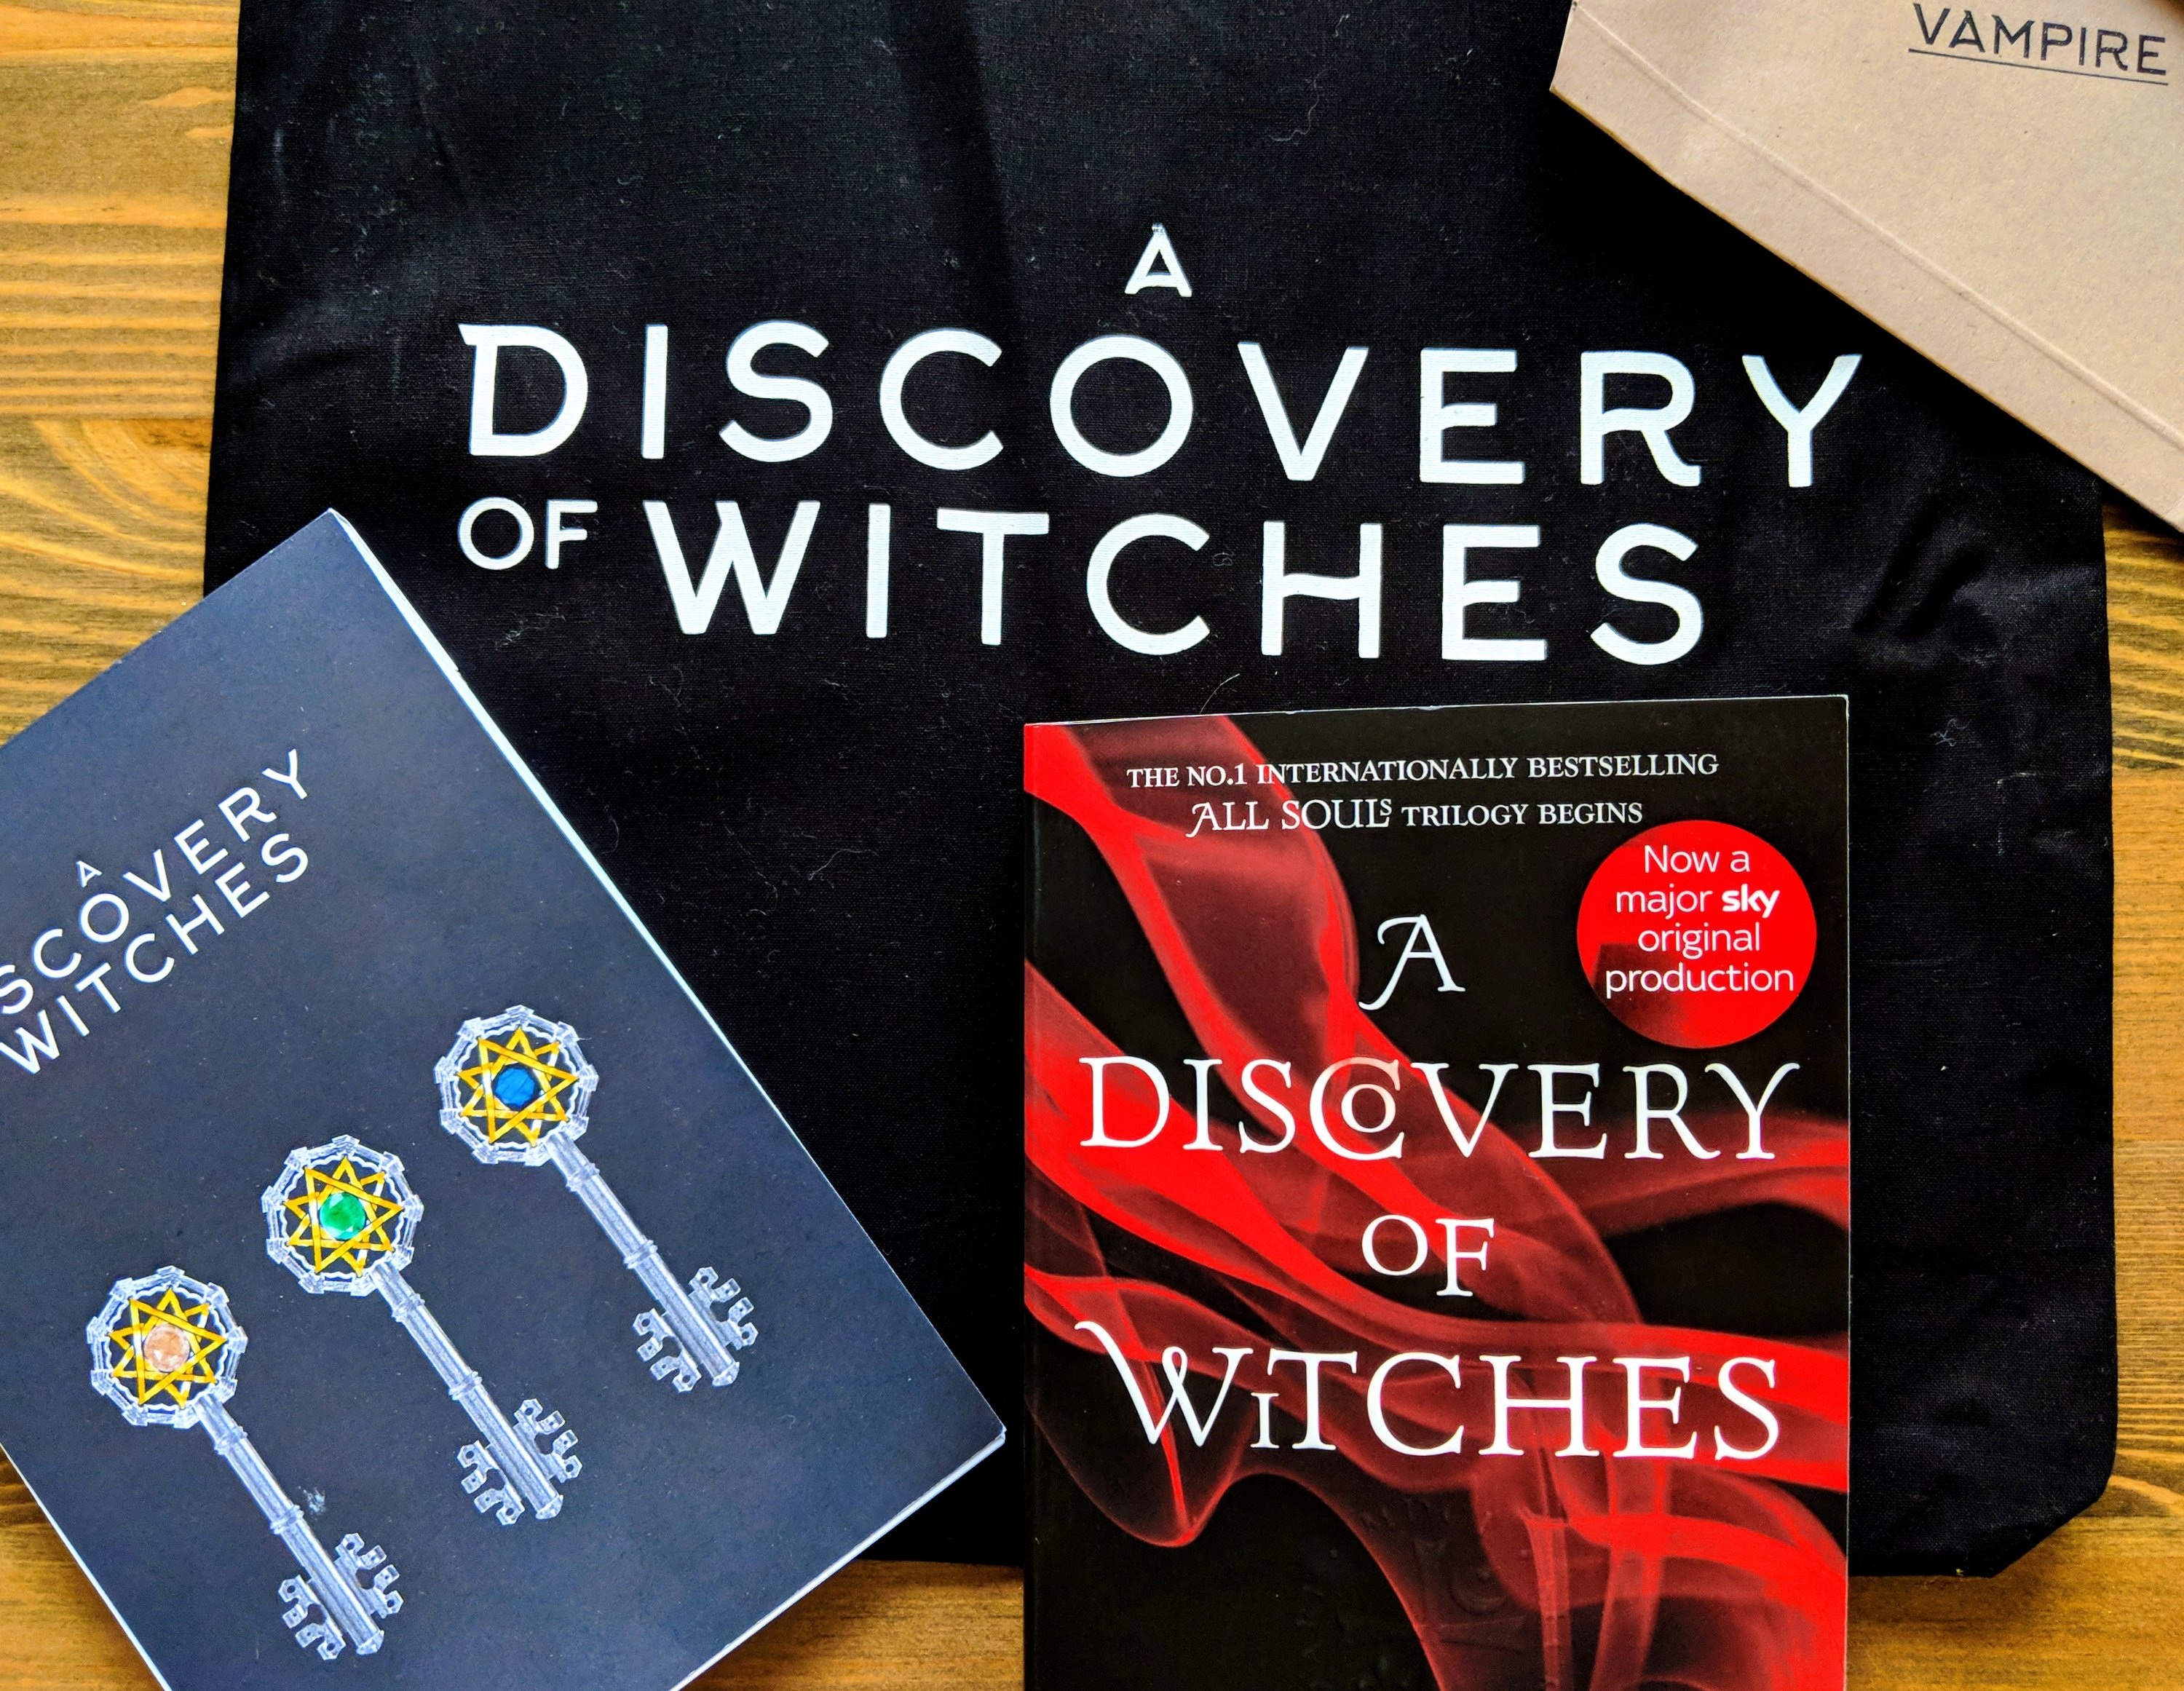 A Discovery of Witches book by Deborah Harkness with a notepad and tote bag from the launch of A Discovery of Witches TV Series